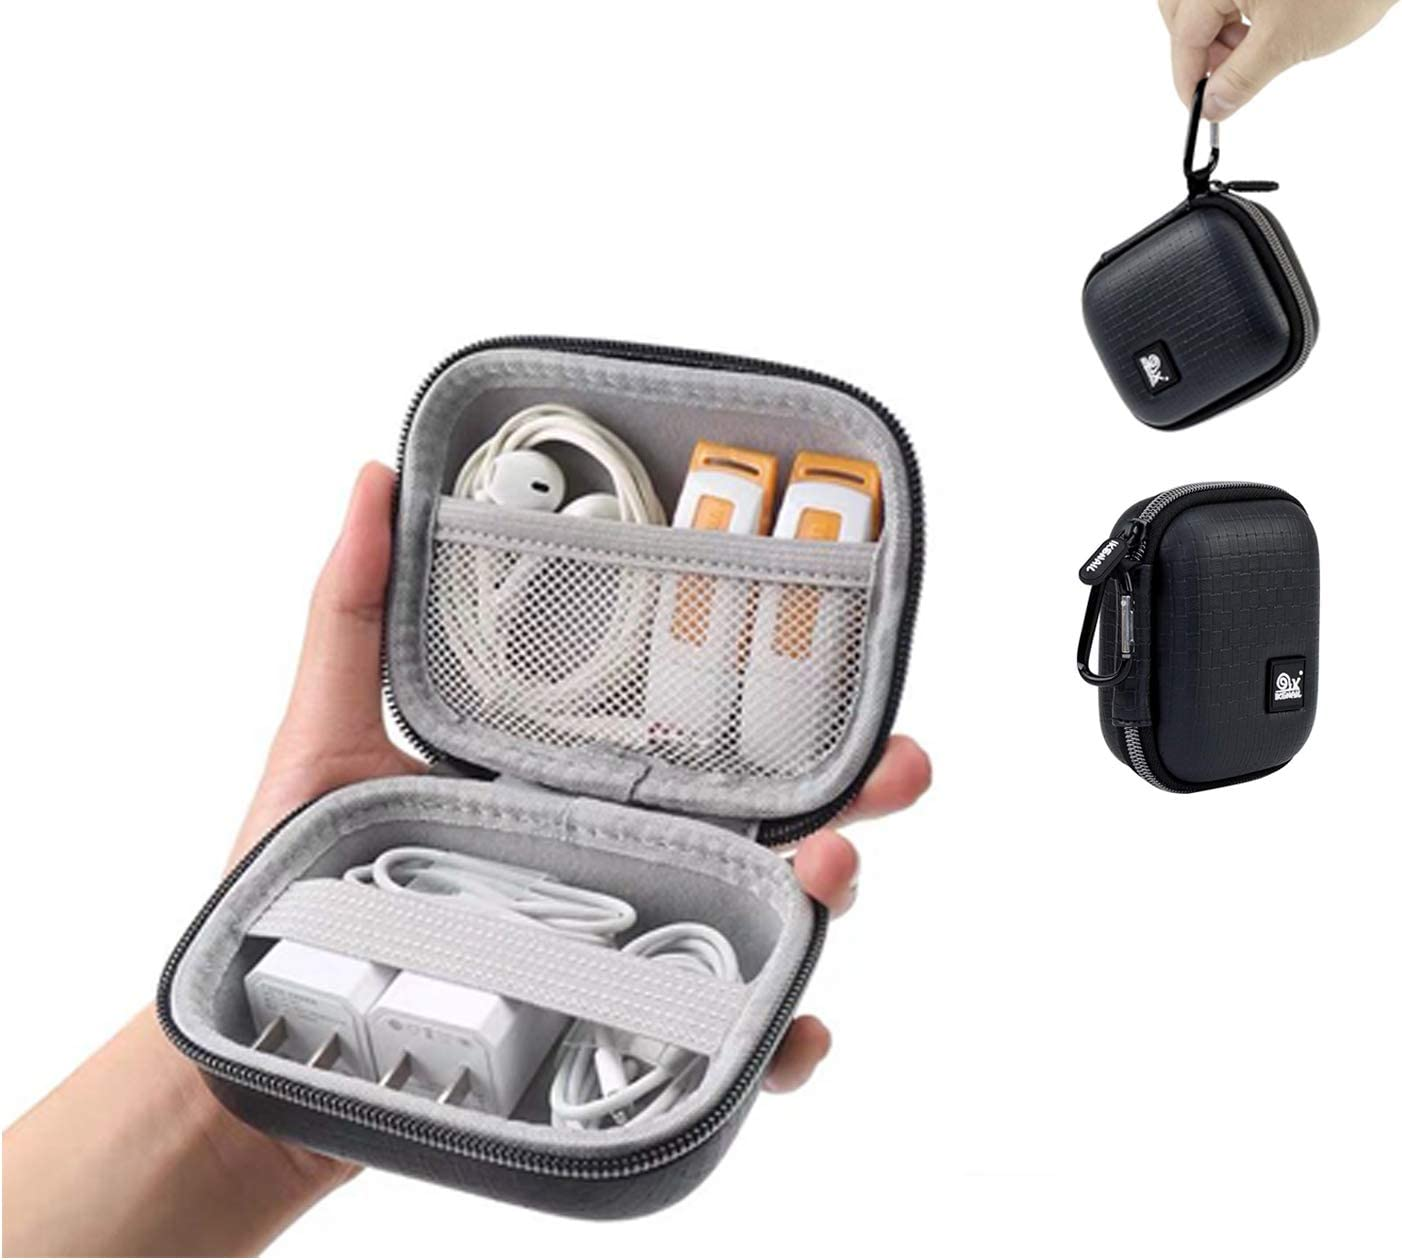 Small Hard Earphone Earbud Case – 4.7 Inch Earbuds Storage Case for Travel, Earbuds Case Pouch Holder for Wired Wireless Earbuds